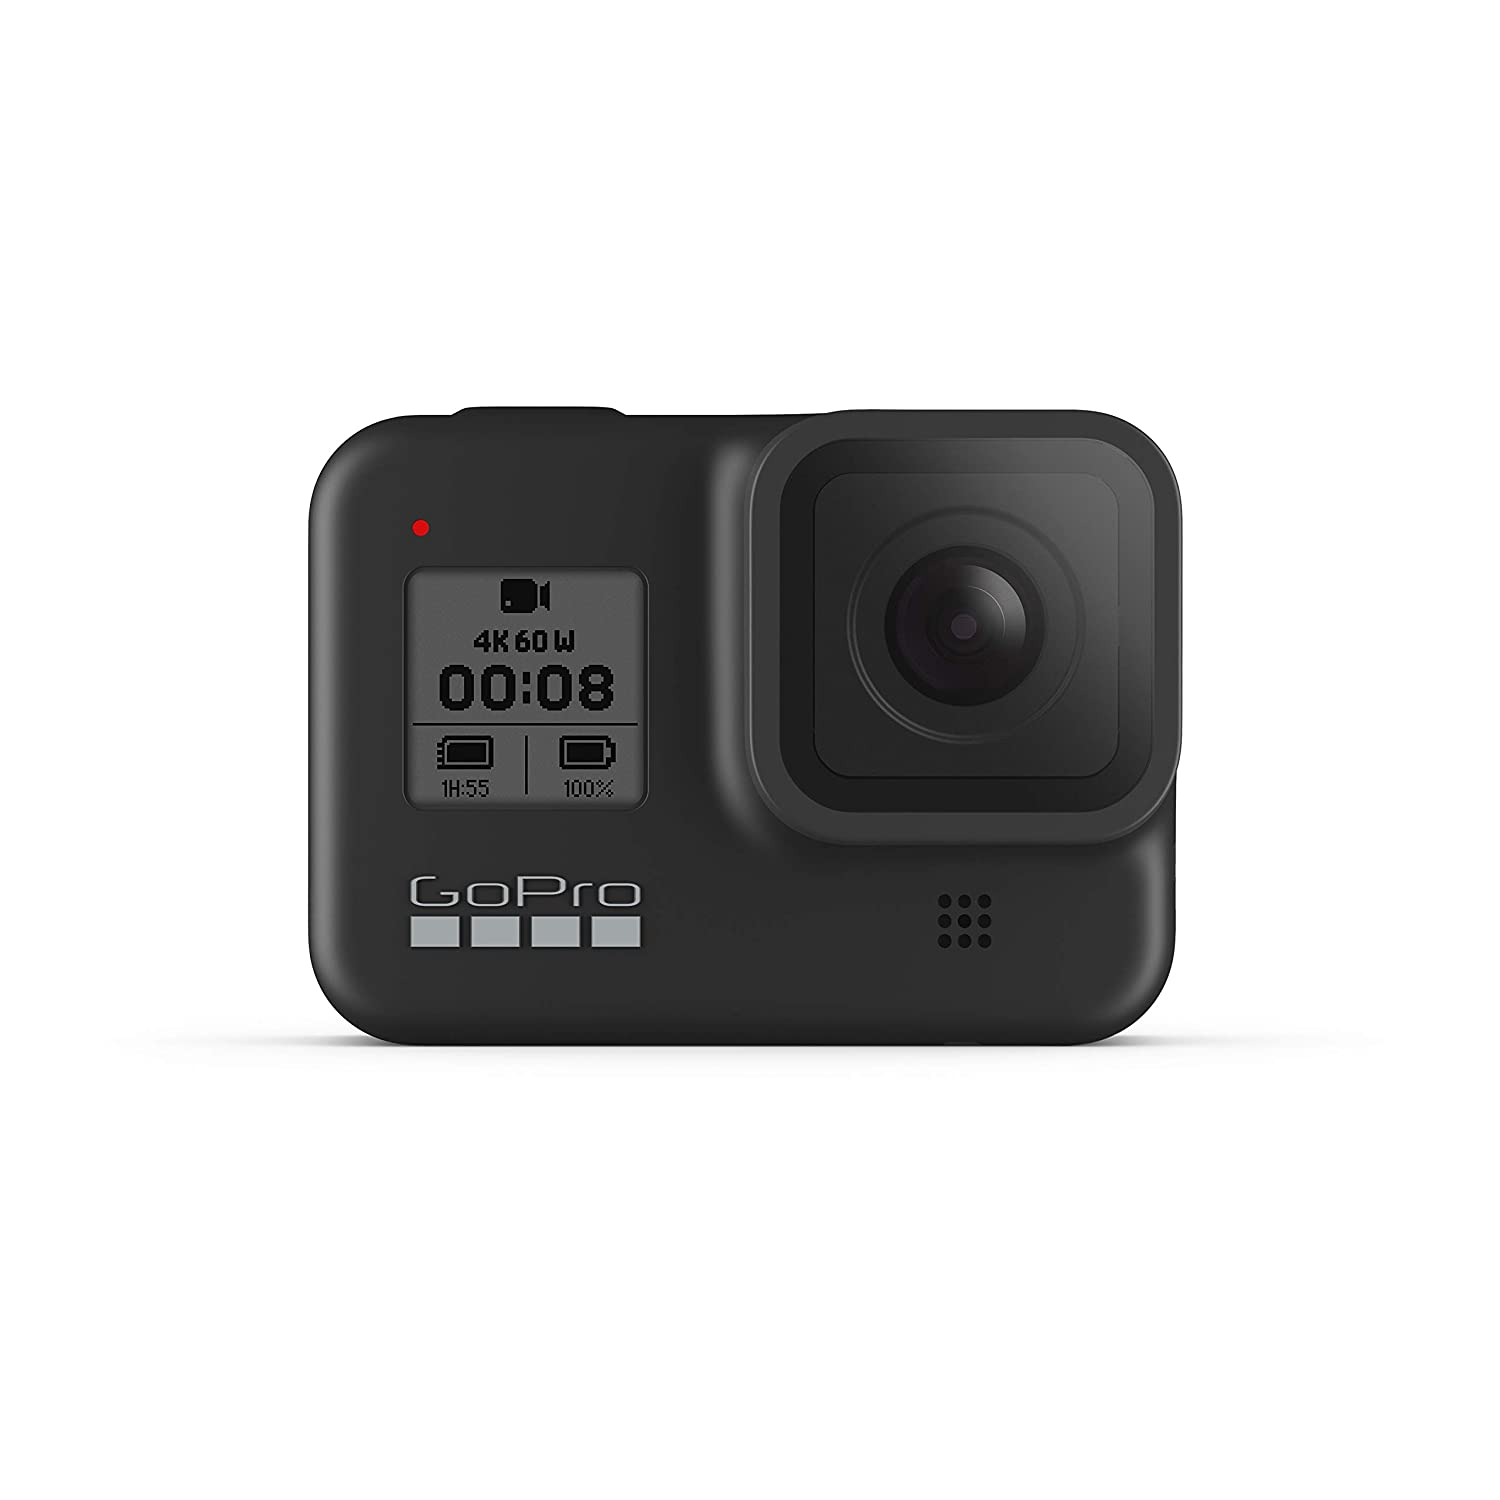 GoPro Hero 8 Black CHDHX-801 12 MP Action Camera